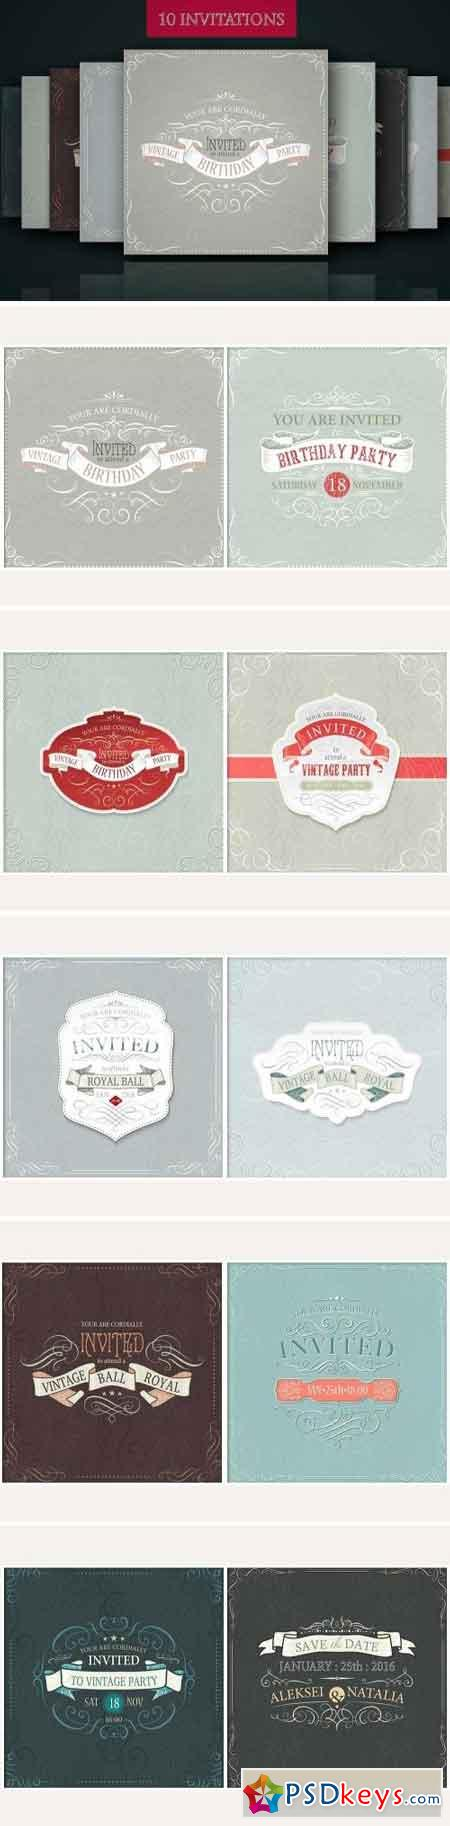 Set of ready design for invitations 1569793